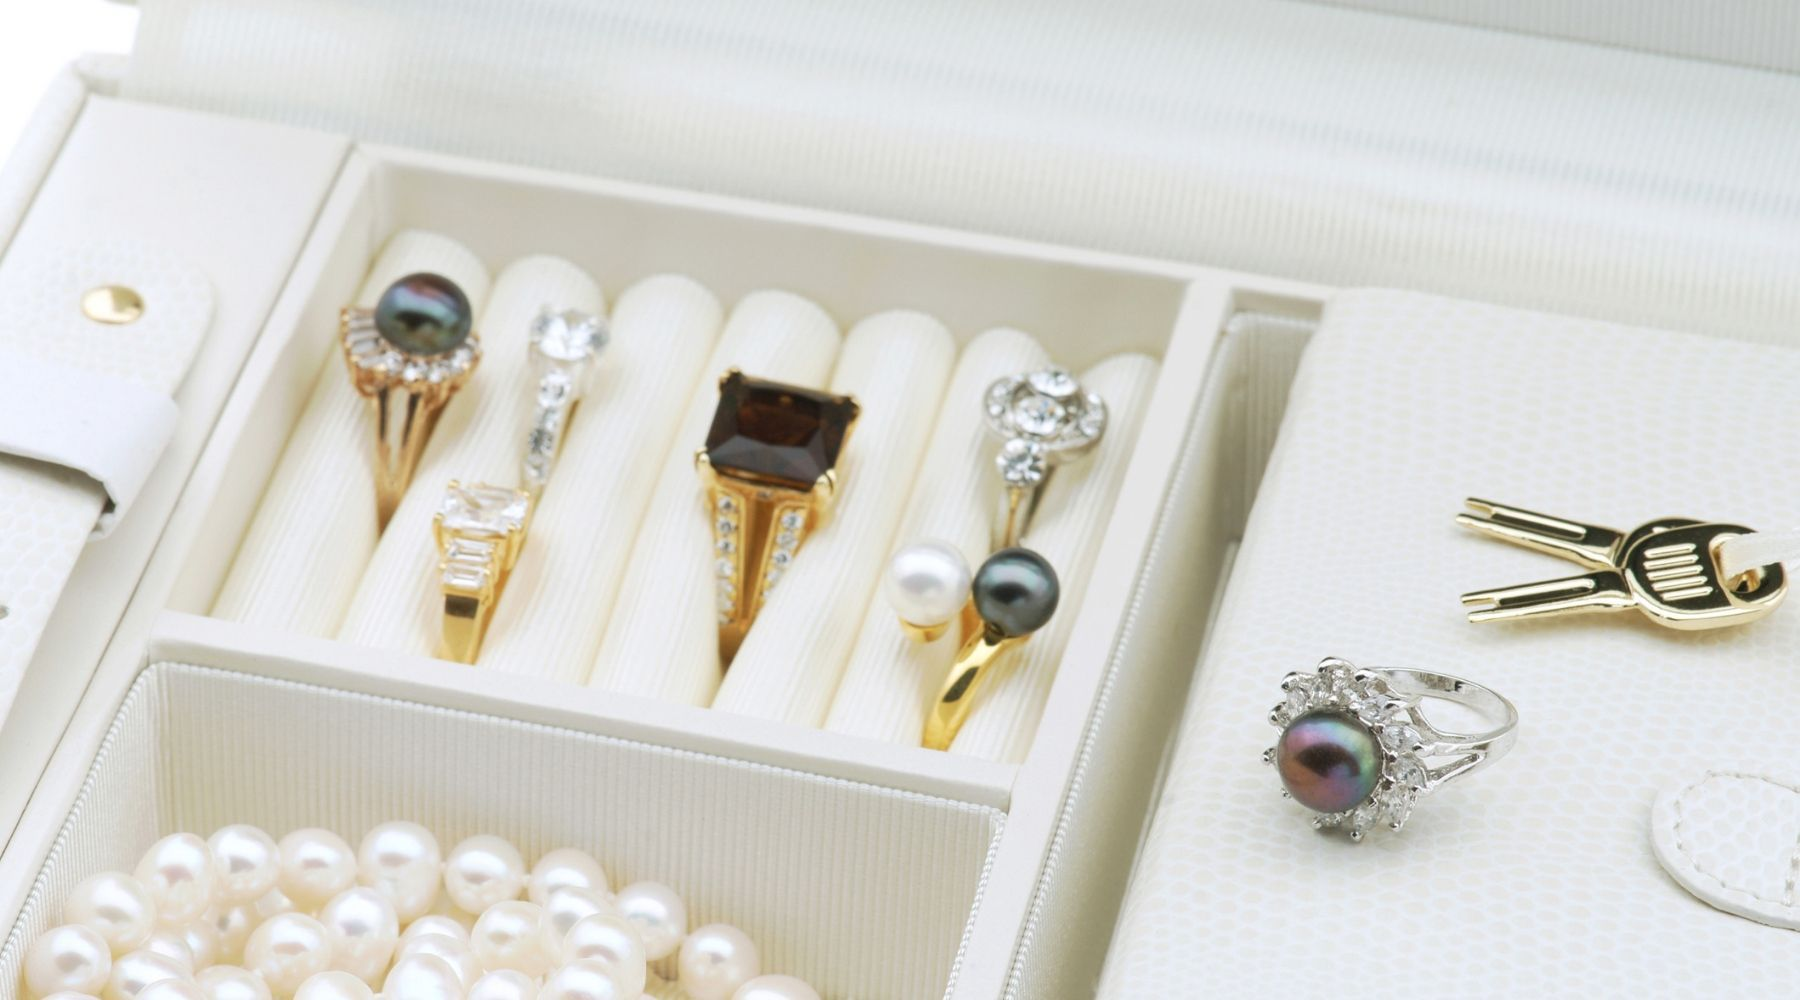 9 Modest Jewelry Ideas to Wear with Funeral Attire